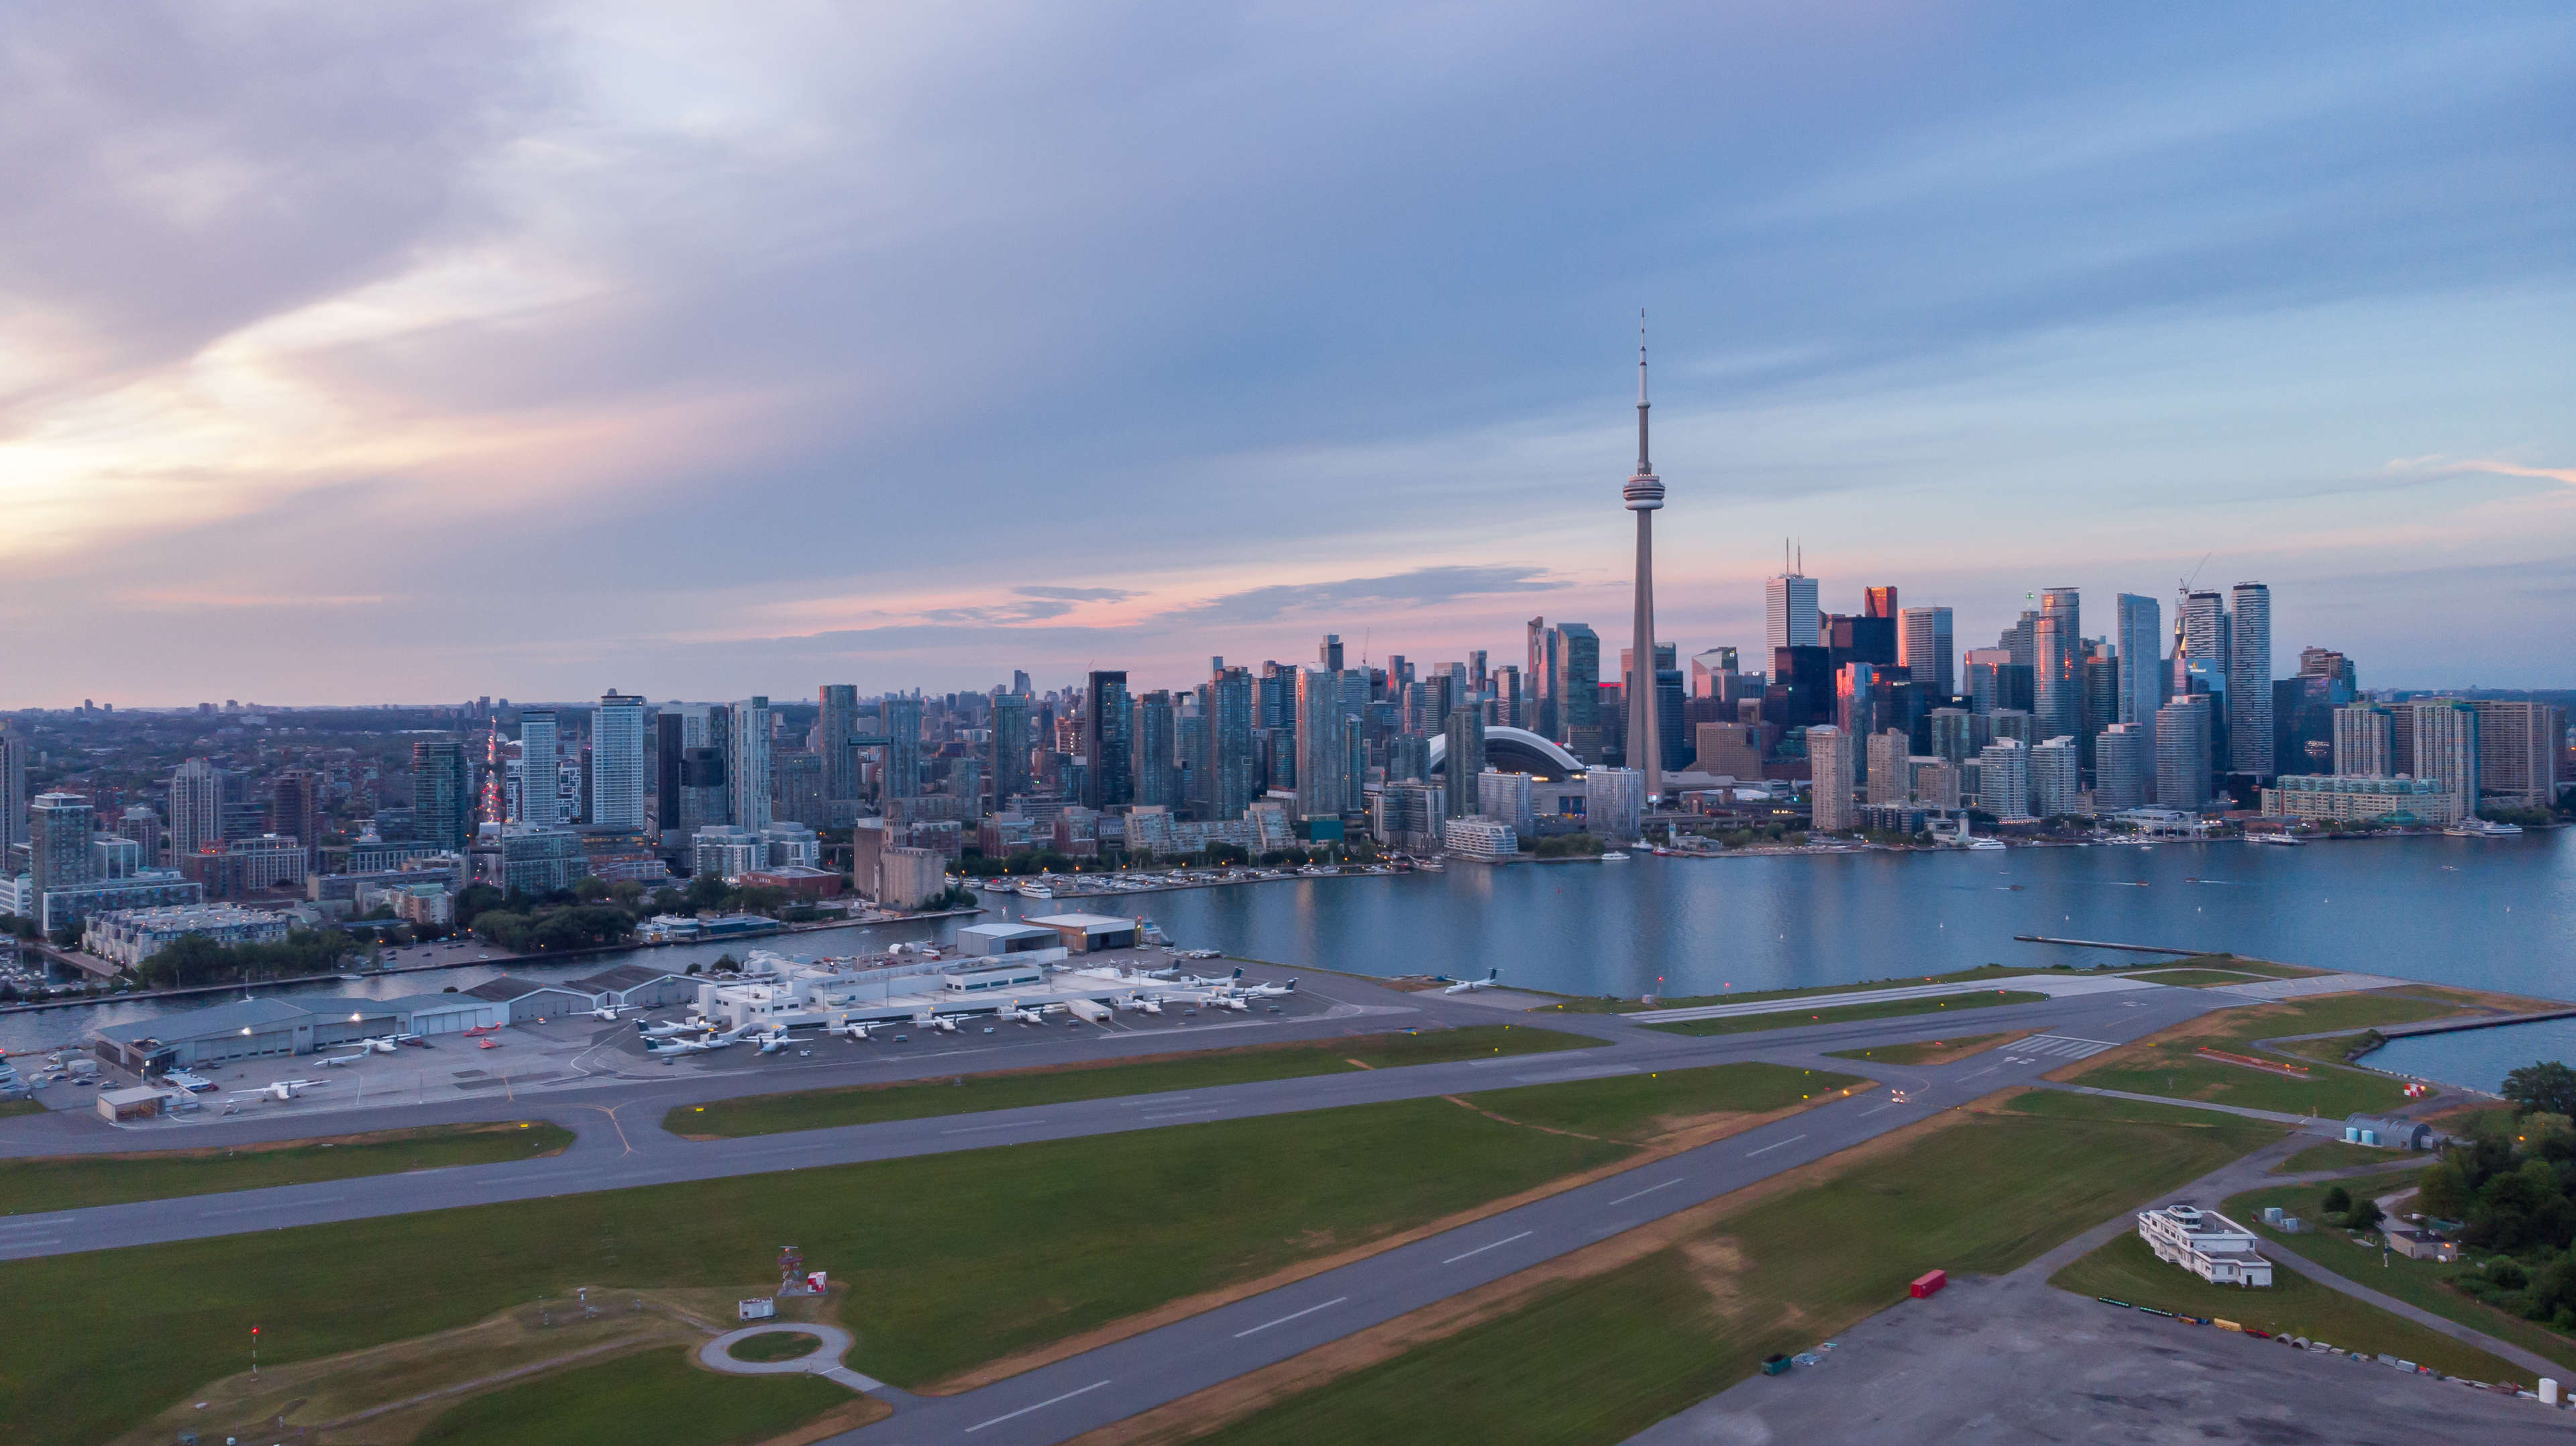 Billy Bishop Airport at dusk with the Toronto city sky line in the background.